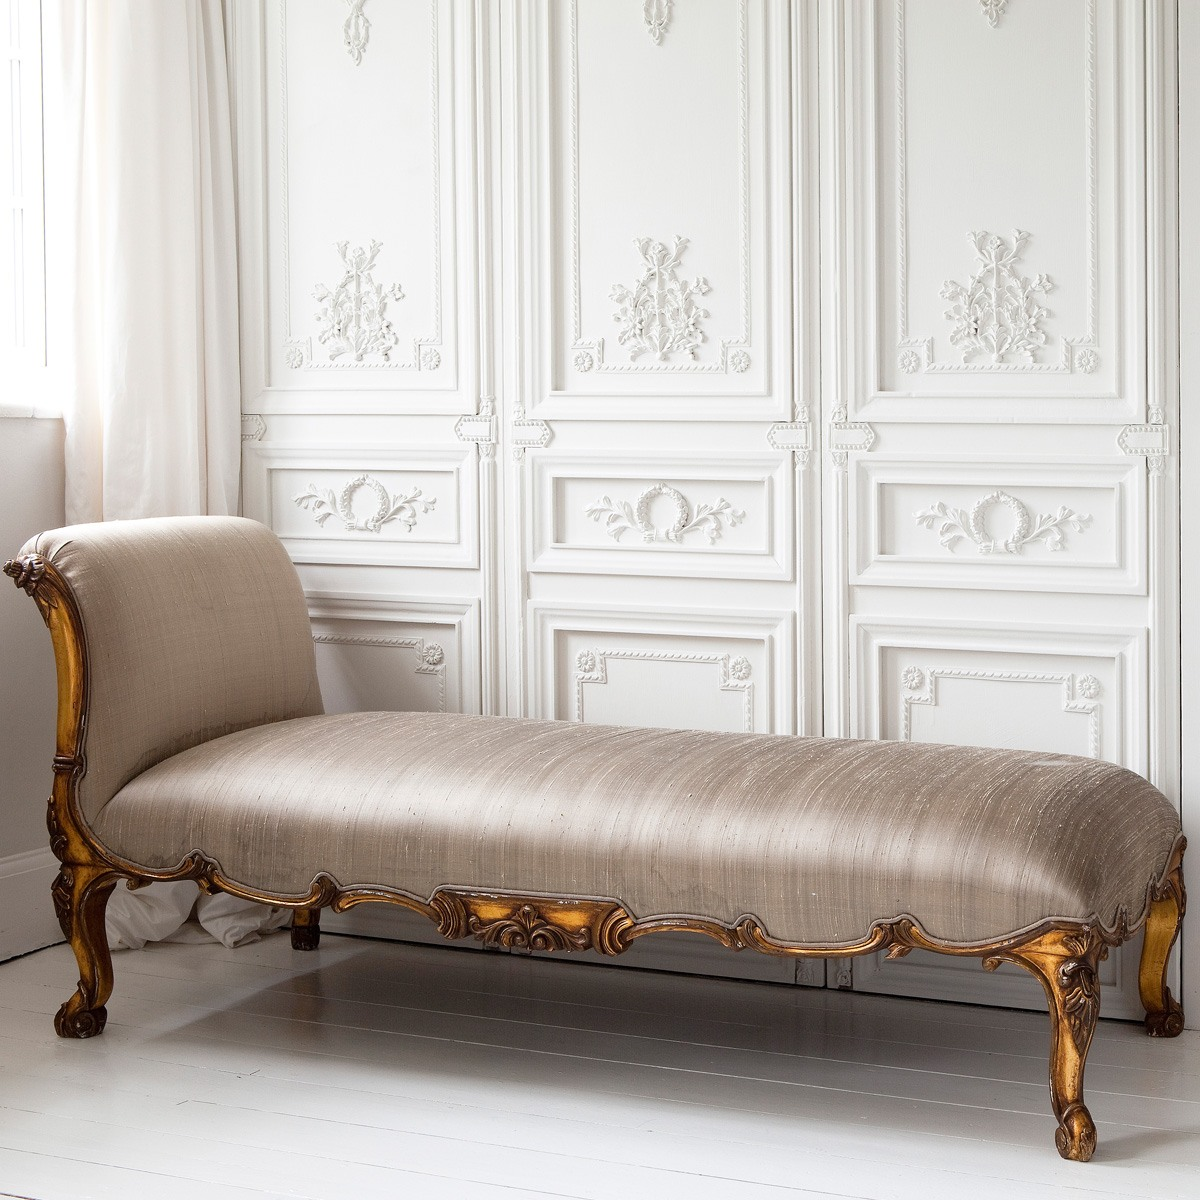 Versailles gold chaise longue french bedroom company for Chaise longue rotin